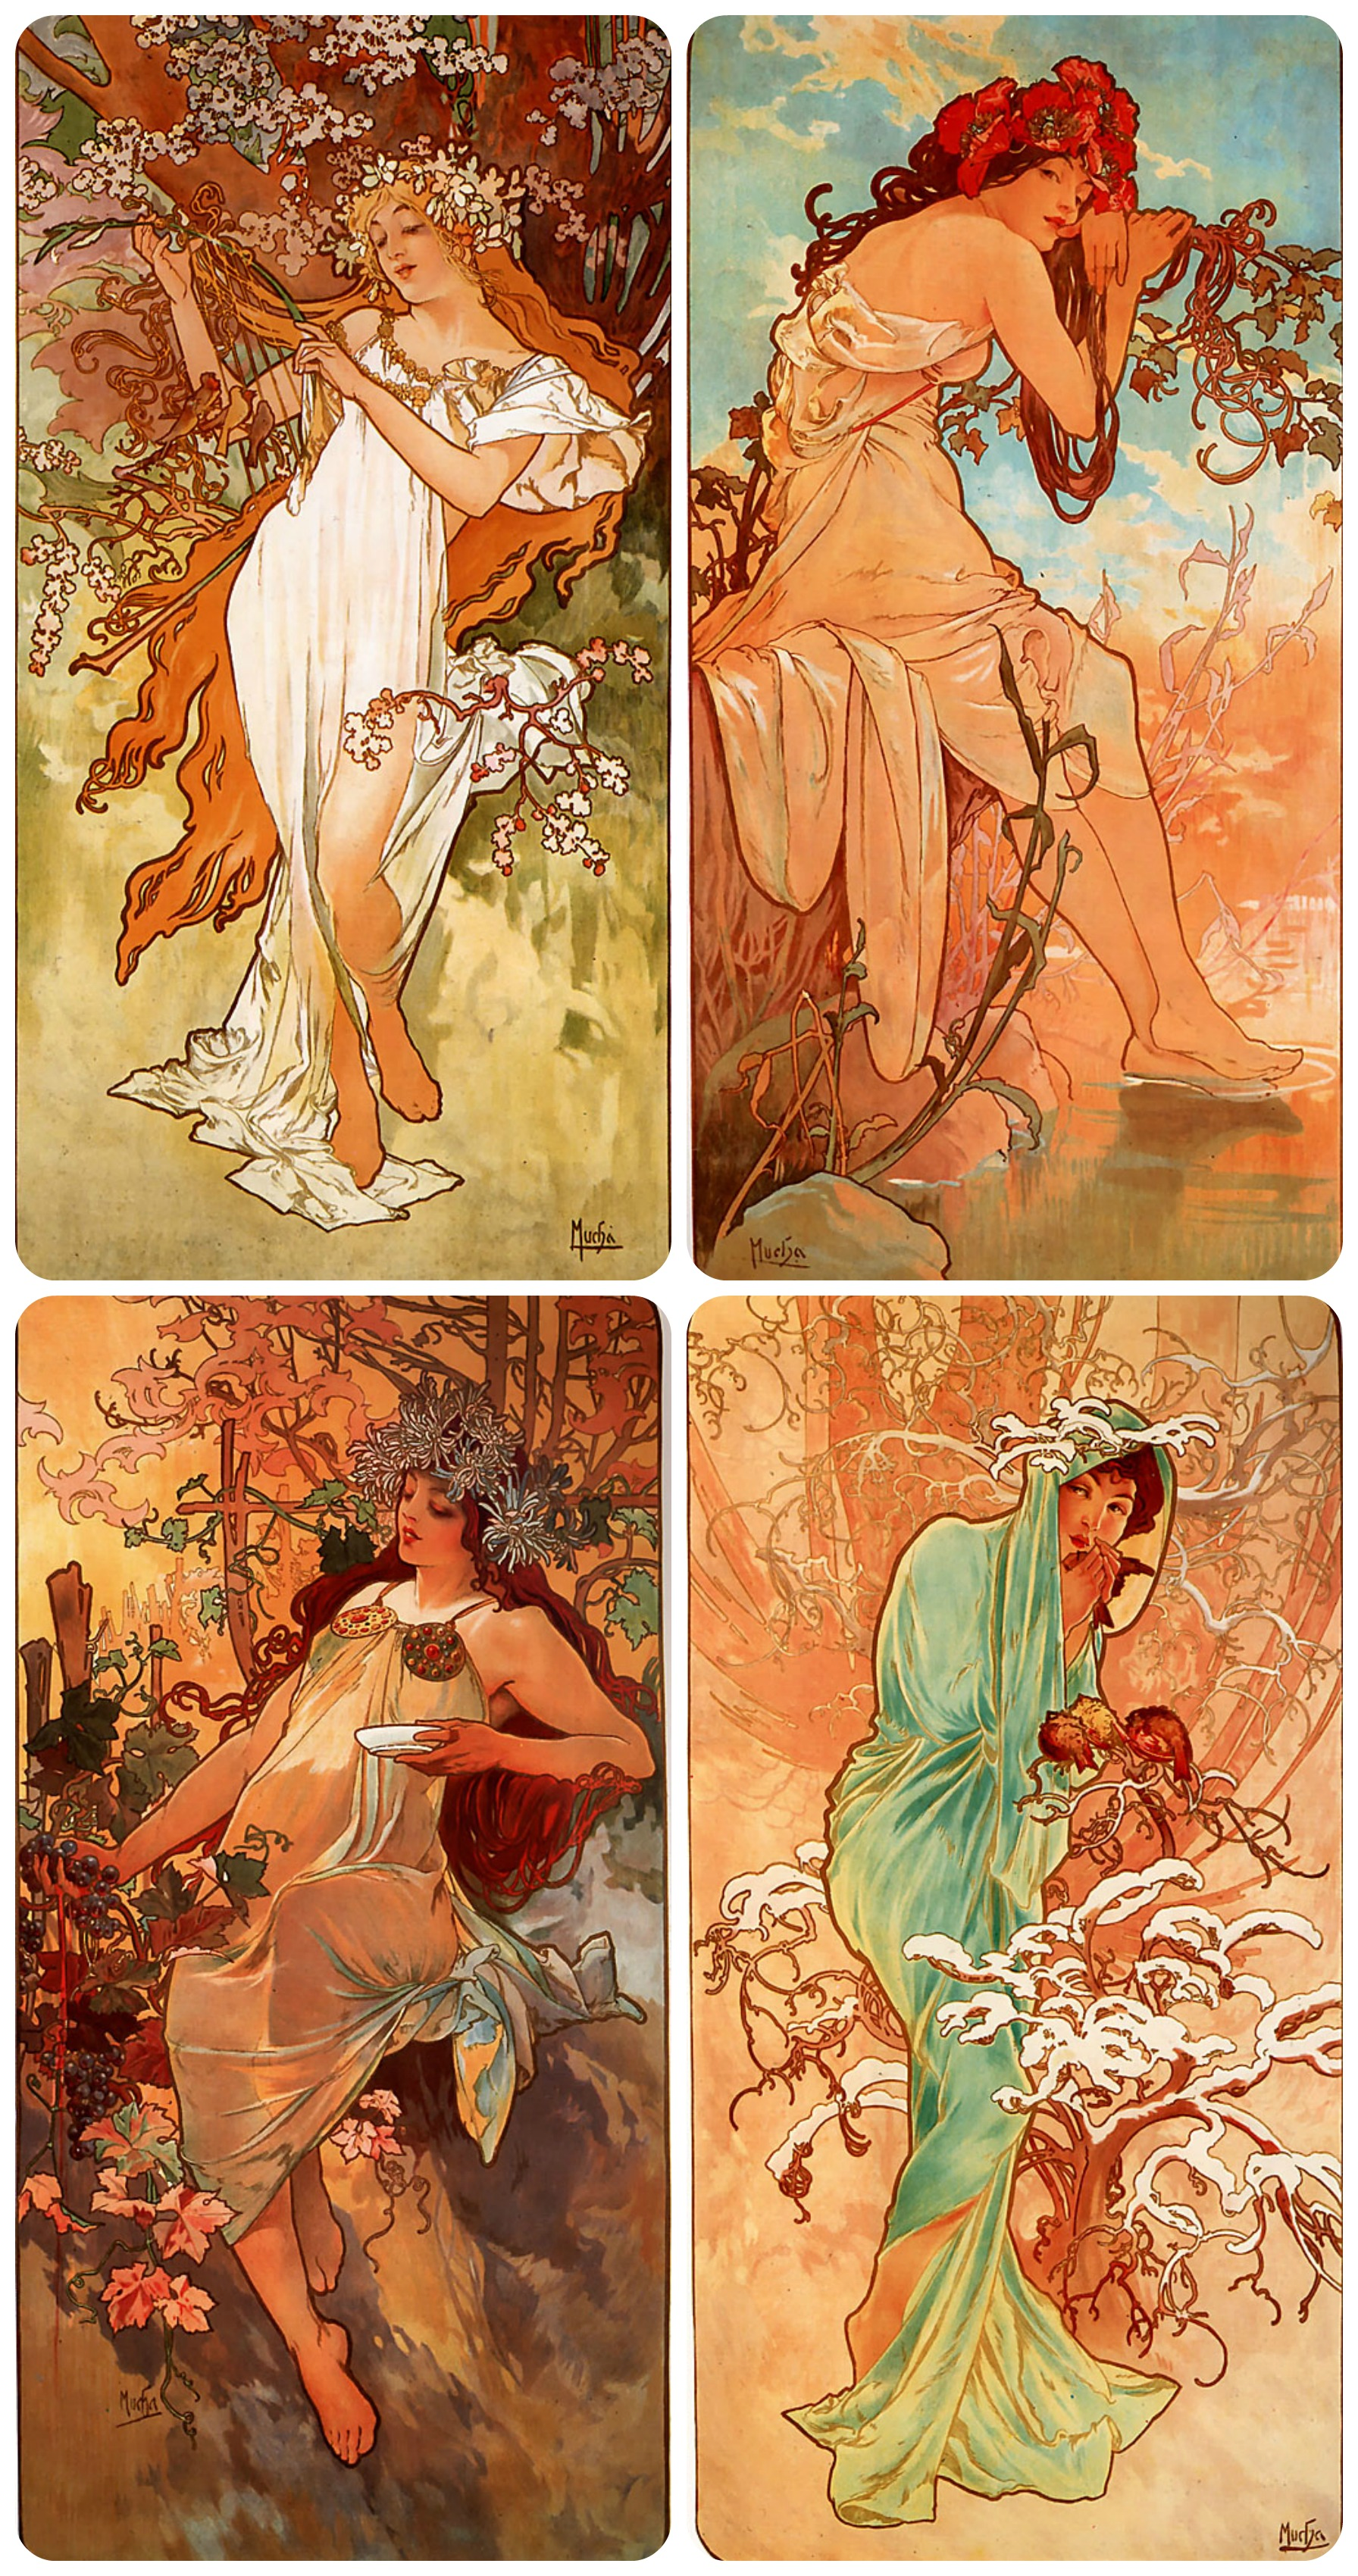 Spring, Summer, Autumn, and Winter by Alphonse much, 1896